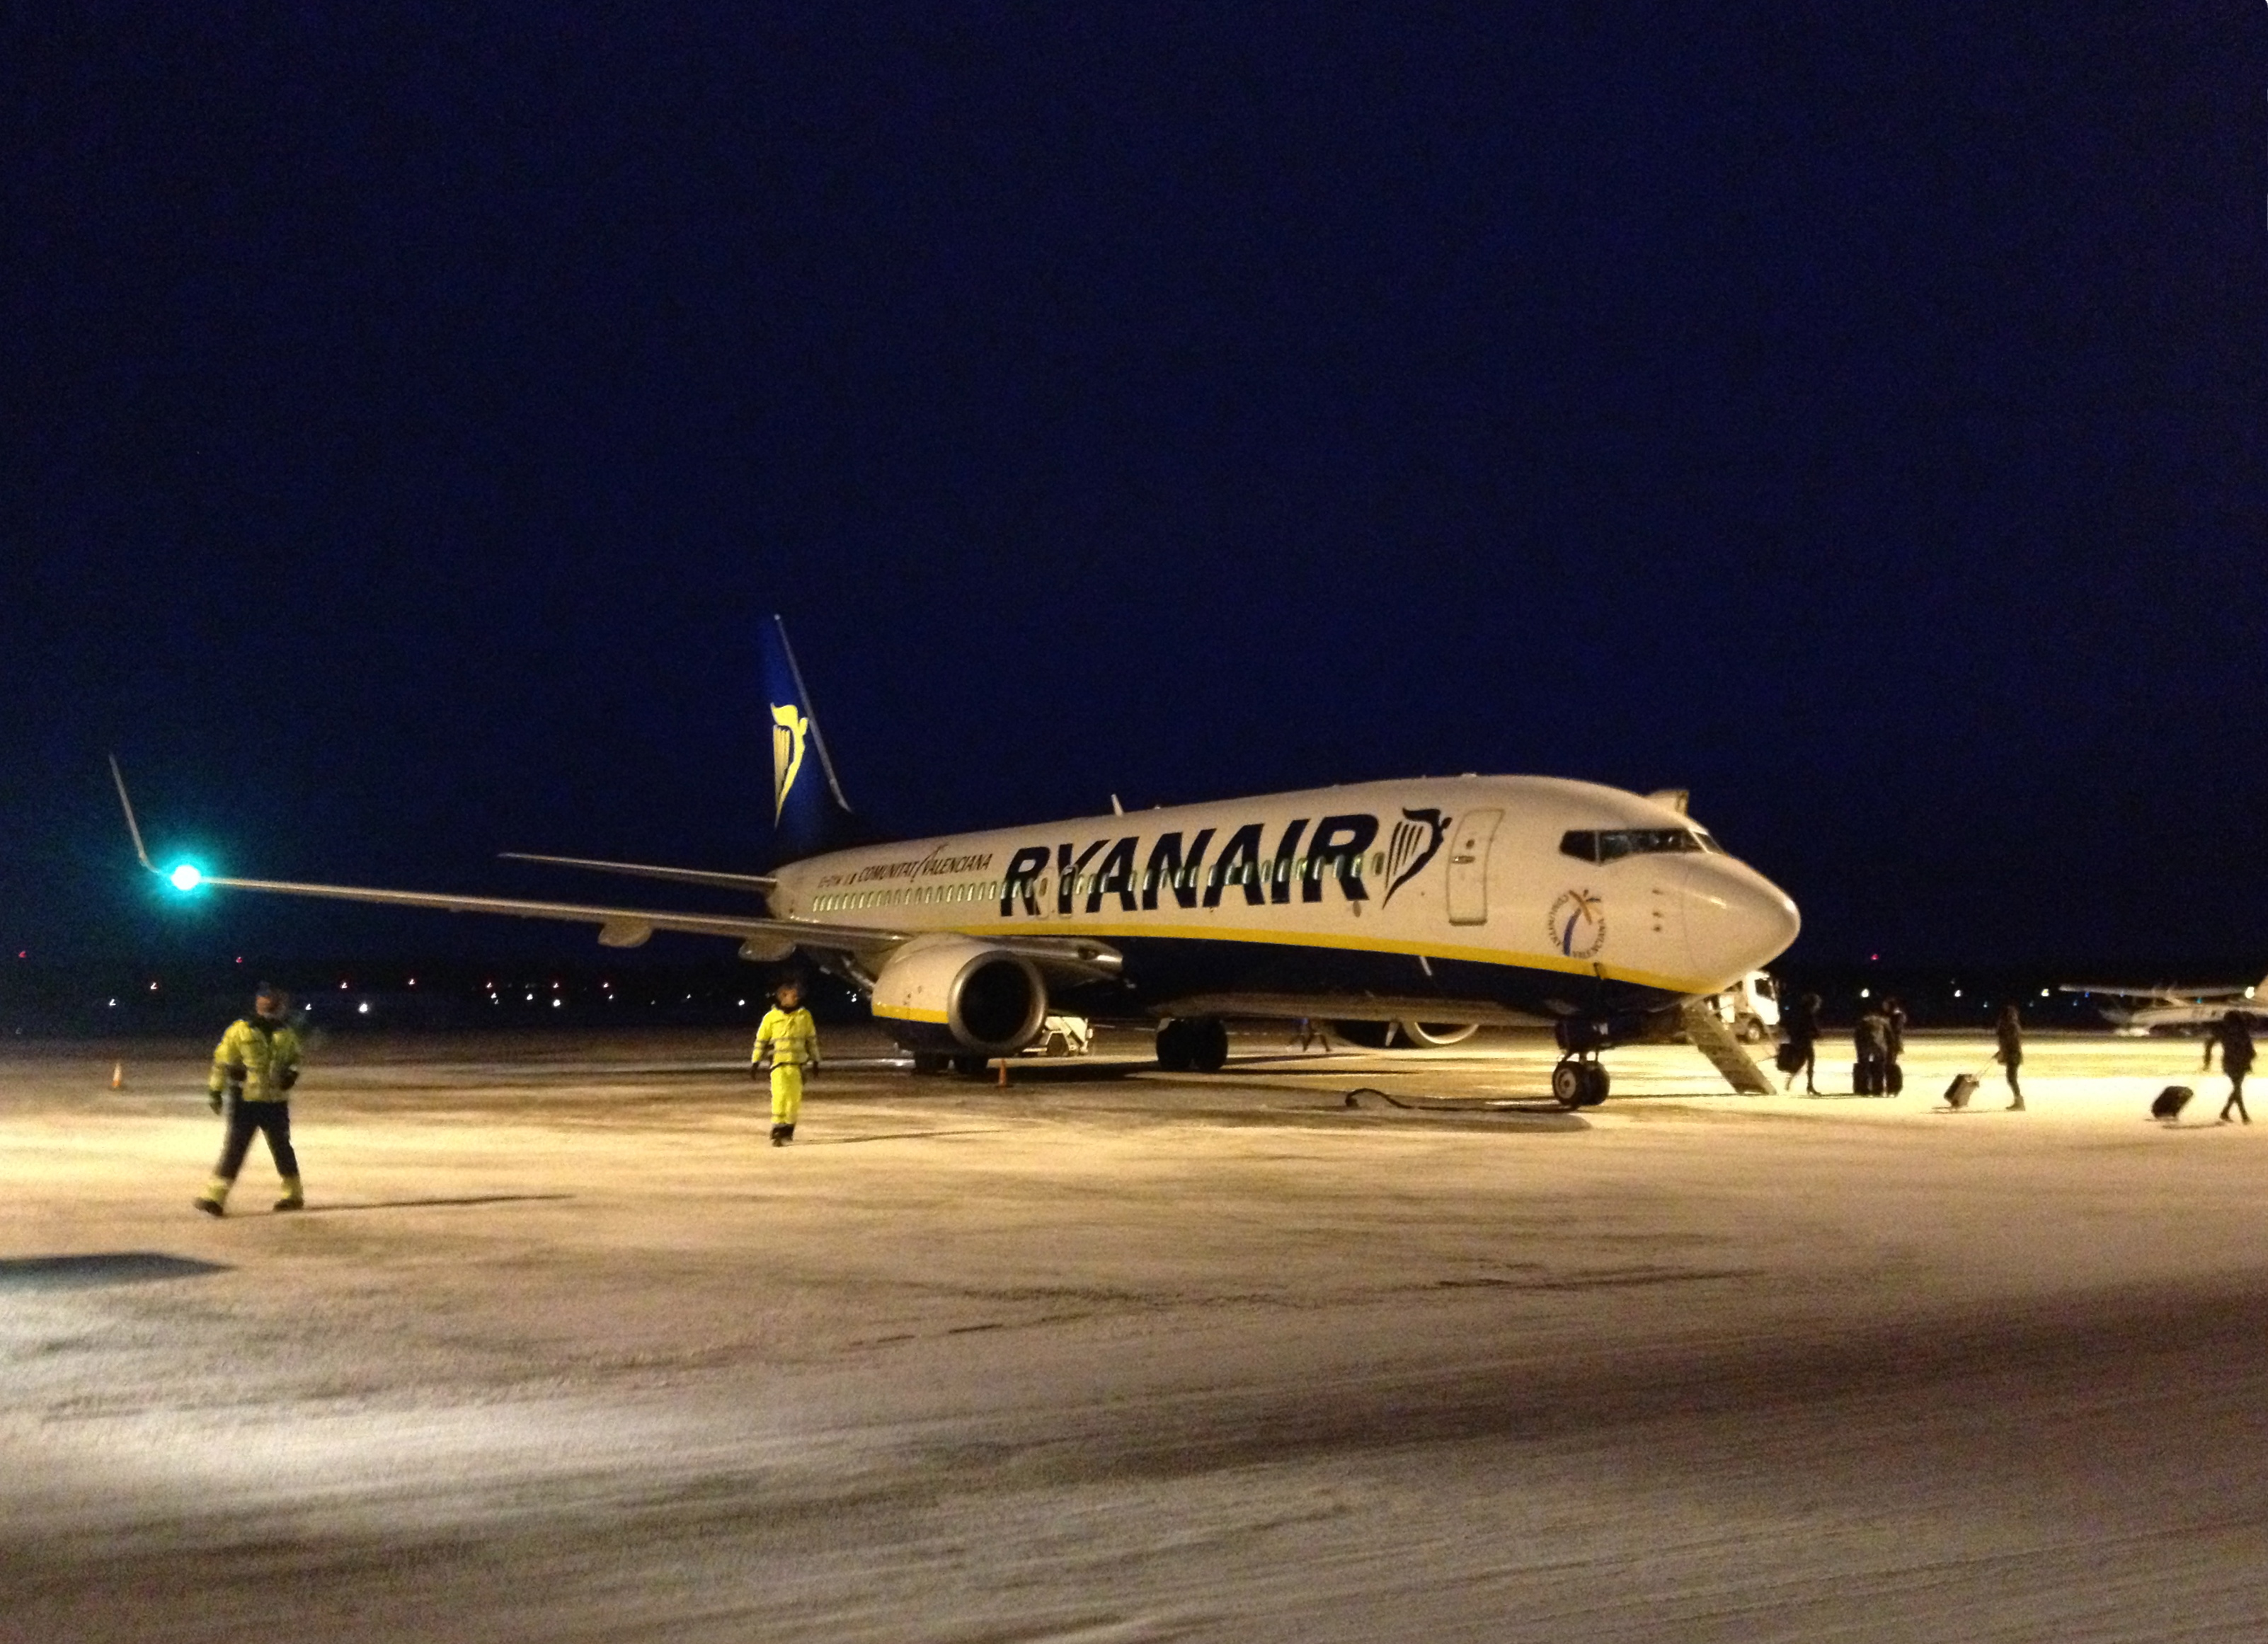 https://upload.wikimedia.org/wikipedia/commons/9/90/Ryanair_Boeing_737-800_at_Rygge_airport.JPG